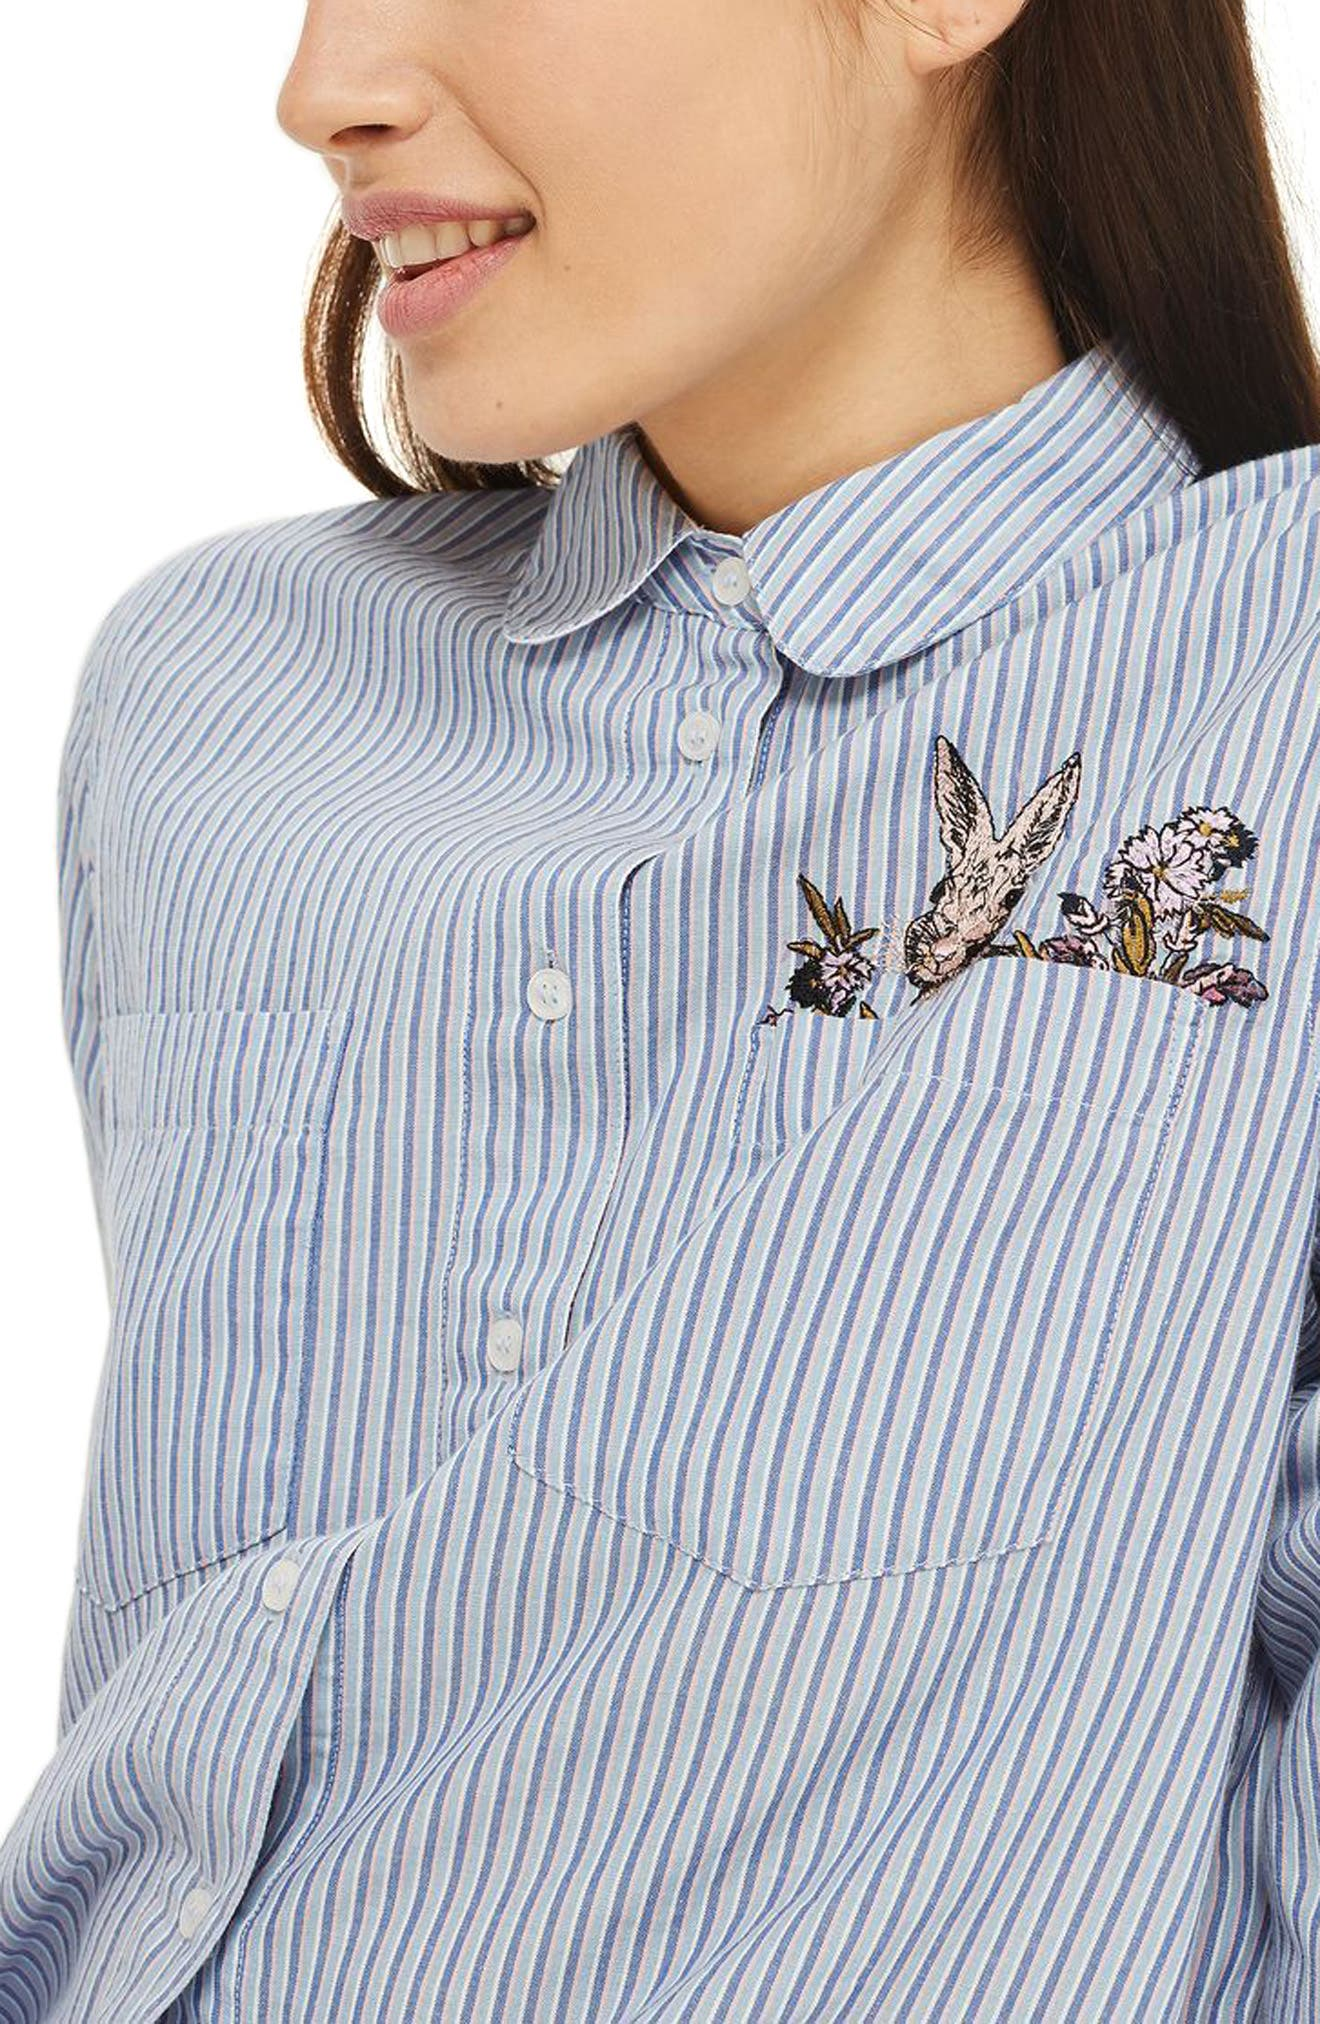 Bunny Embroidered Short Pajamas,                             Alternate thumbnail 2, color,                             650